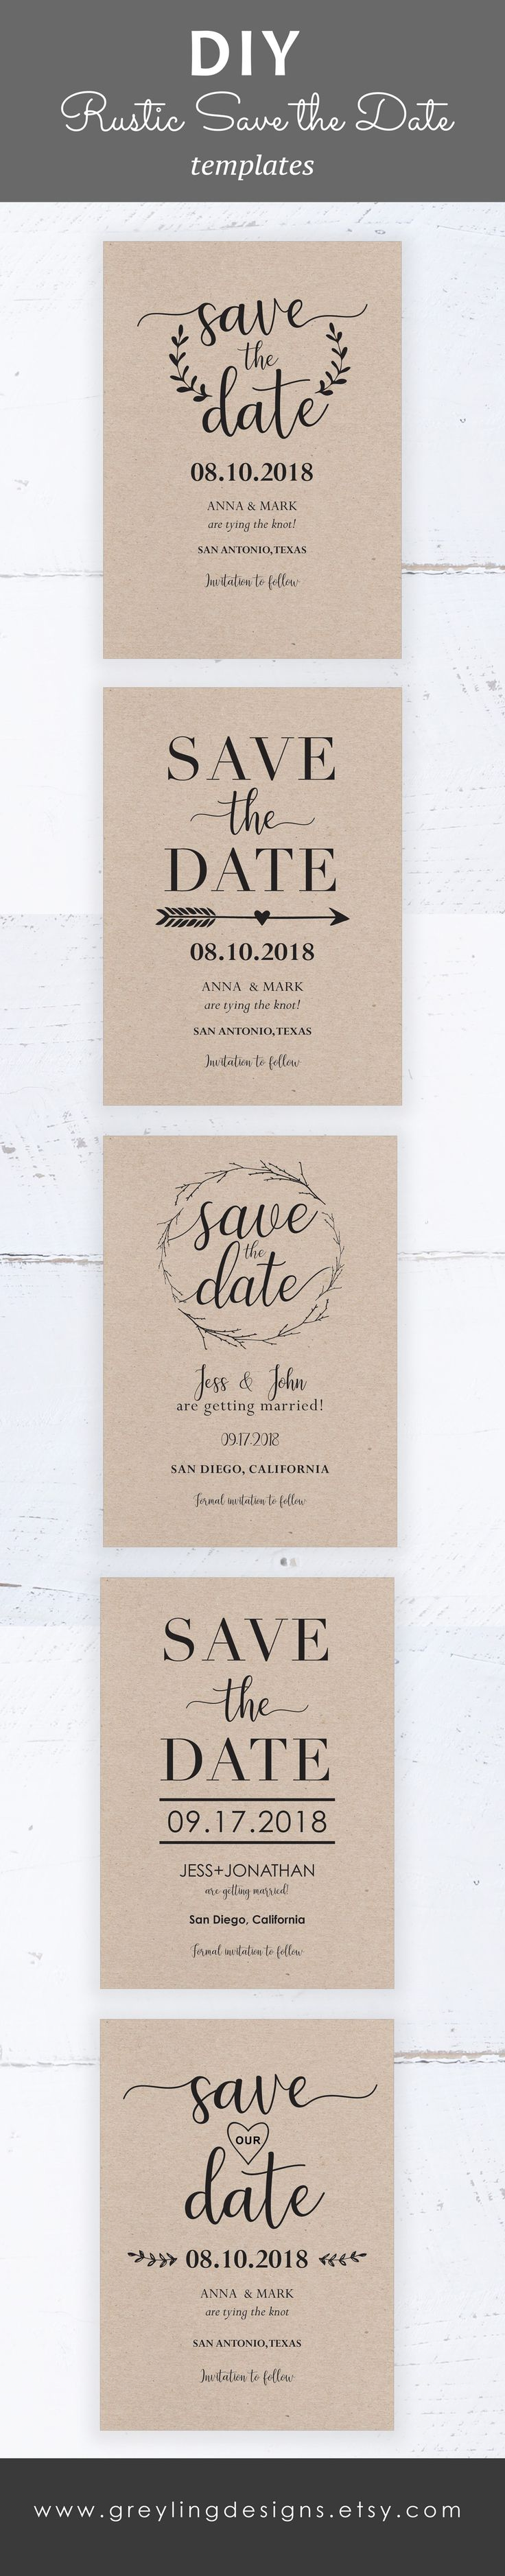 free bridal shower advice card template%0A Rustic save the date template  instant download  editable template   printable save the date